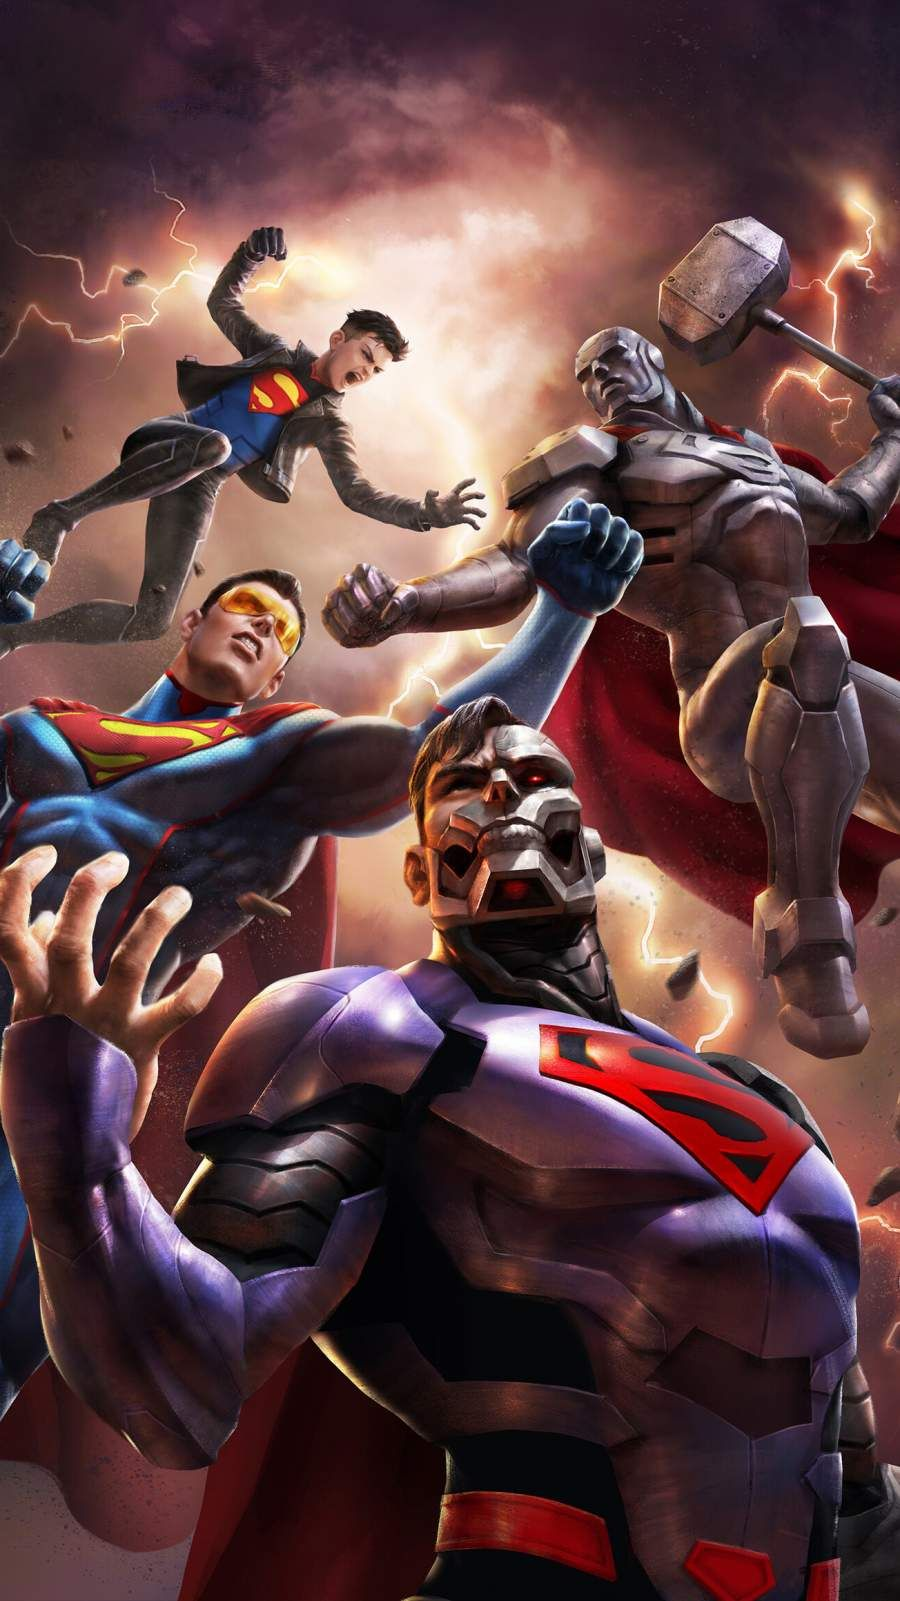 Reign Of The Superman Iphone Wallpaper In 2020 Superman